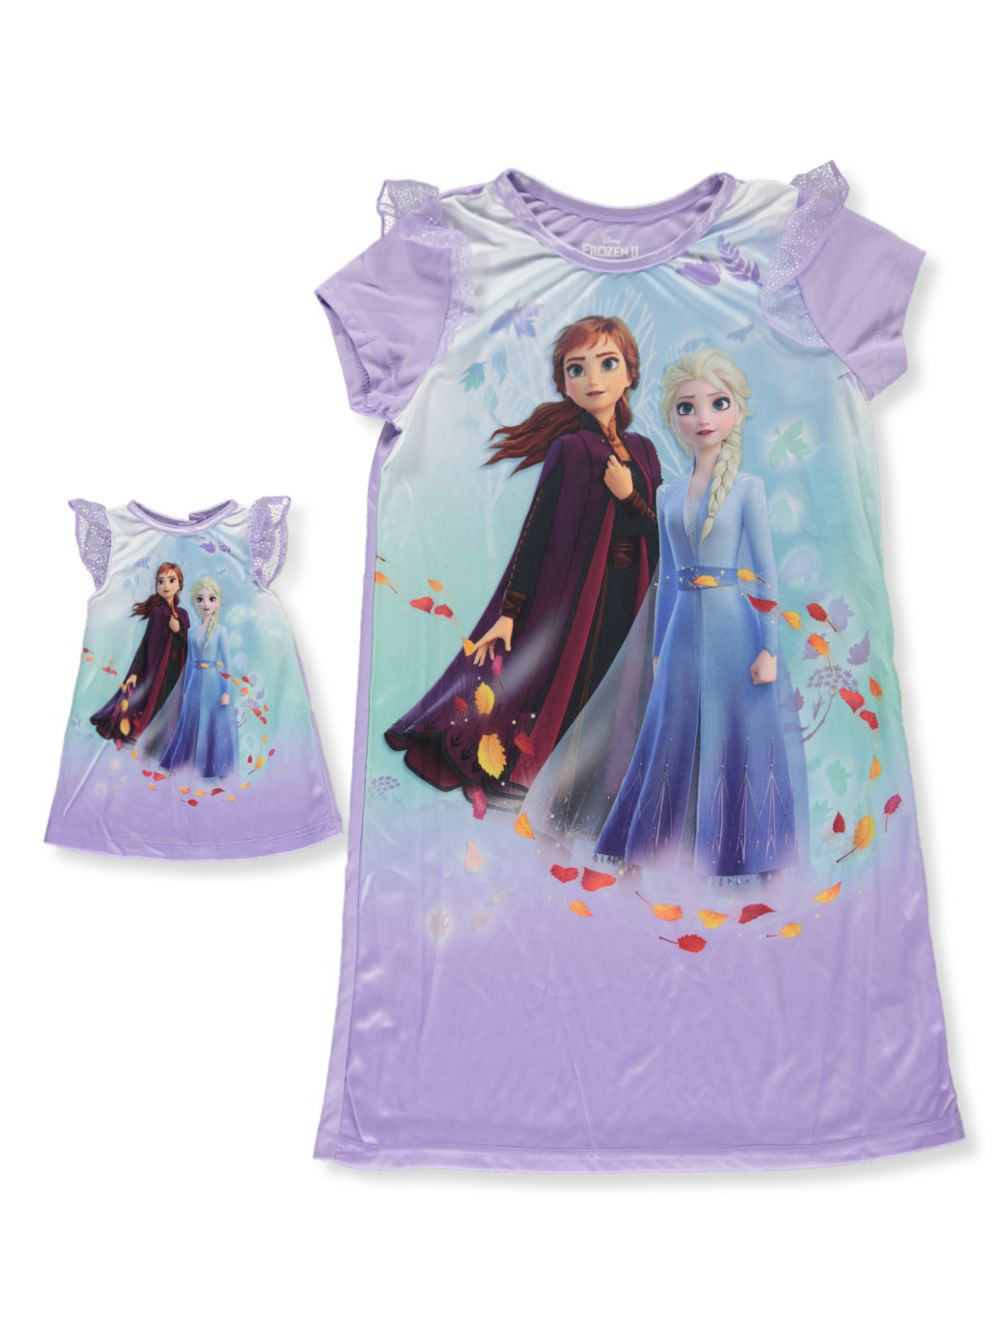 Girls Fashion Nightgown